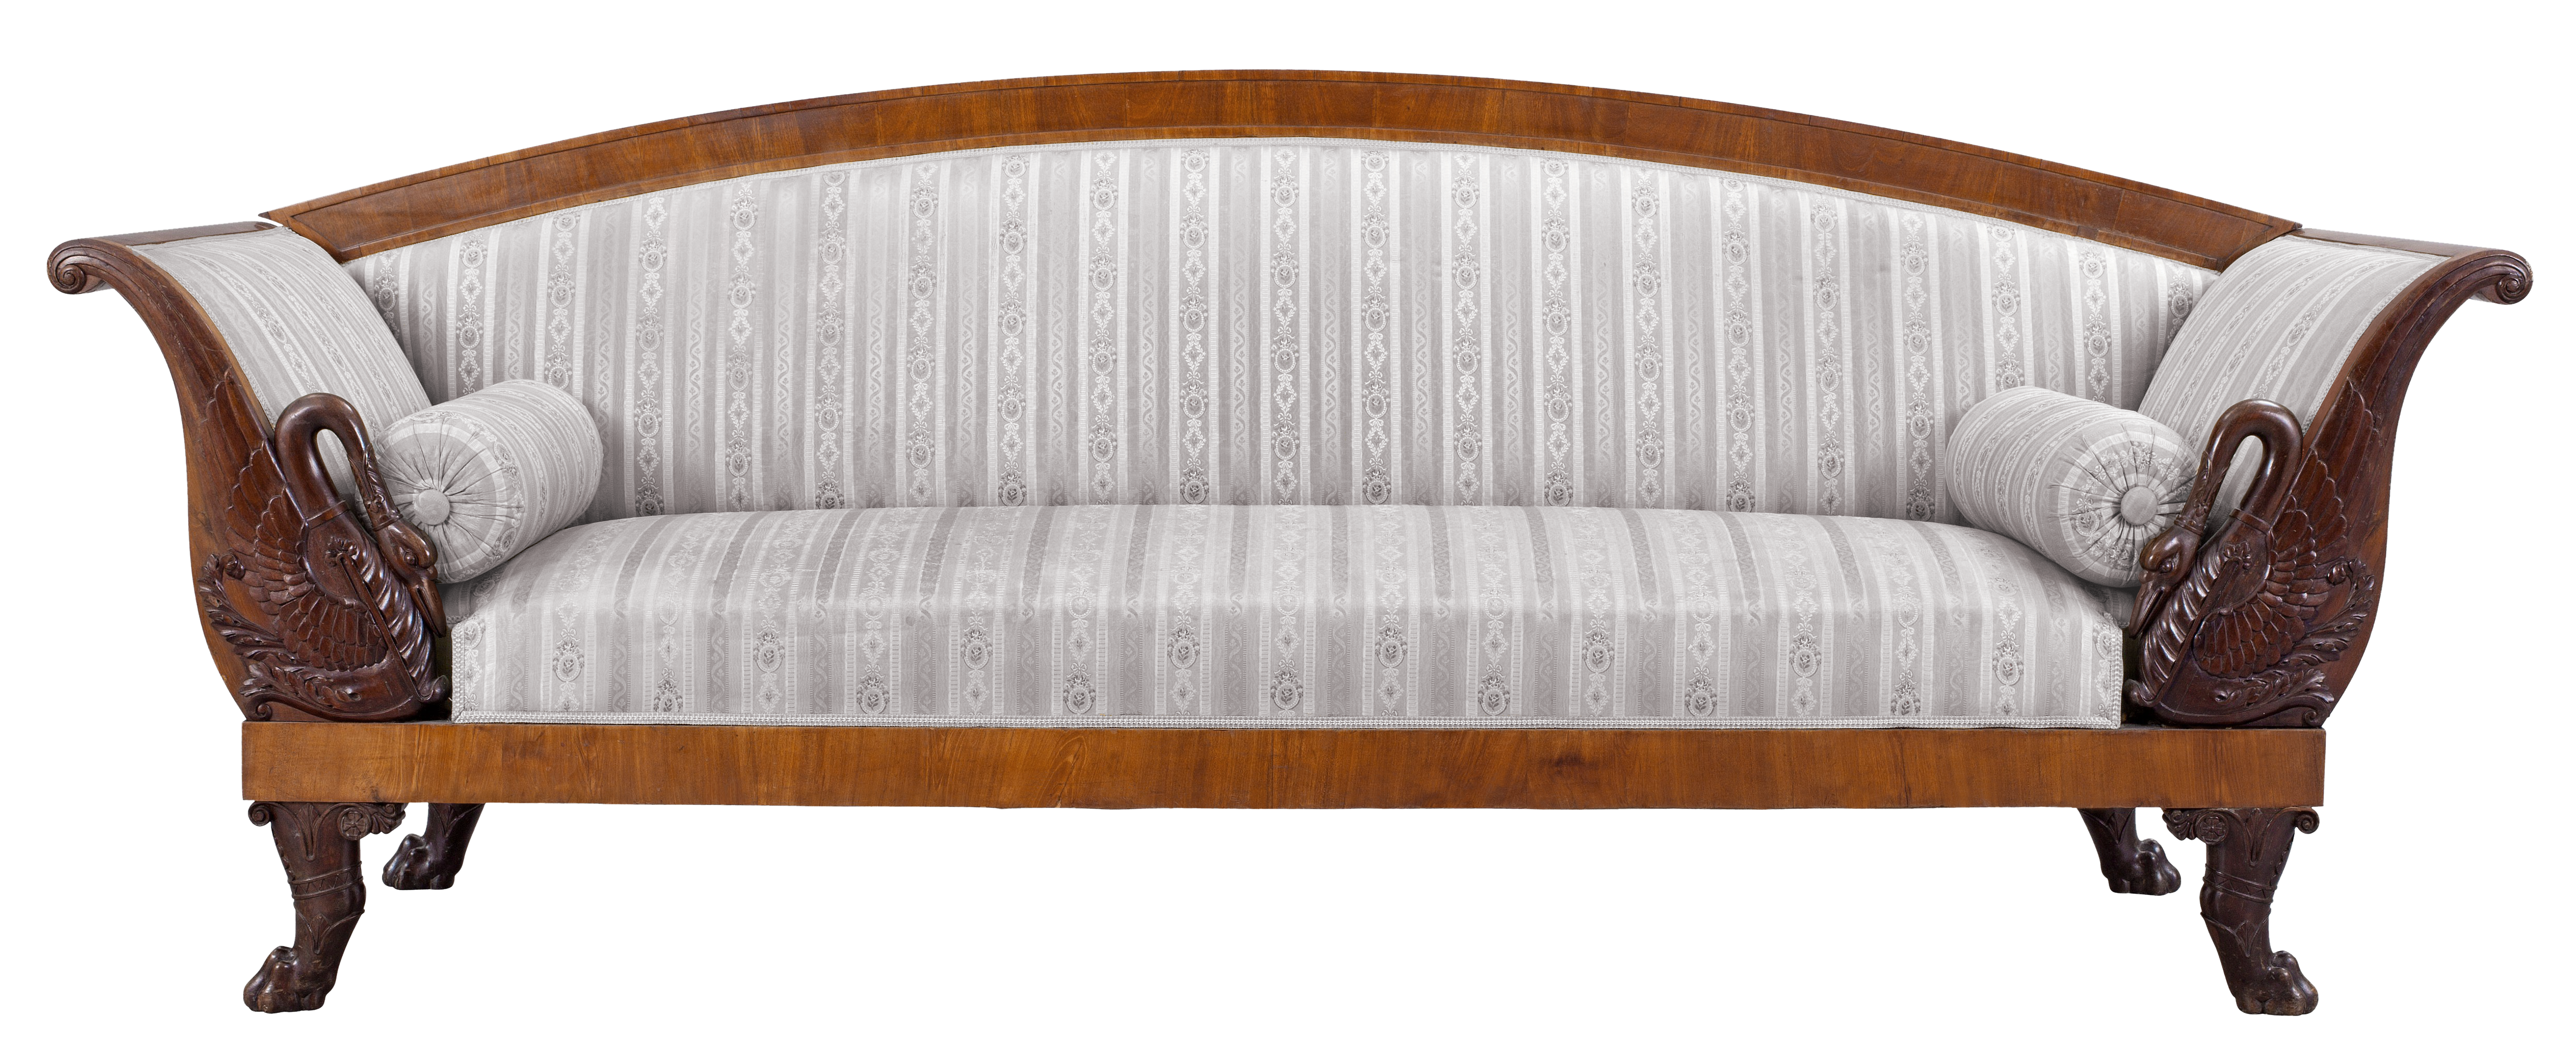 Furniture clipart farnichar. Transparent vintage couch png